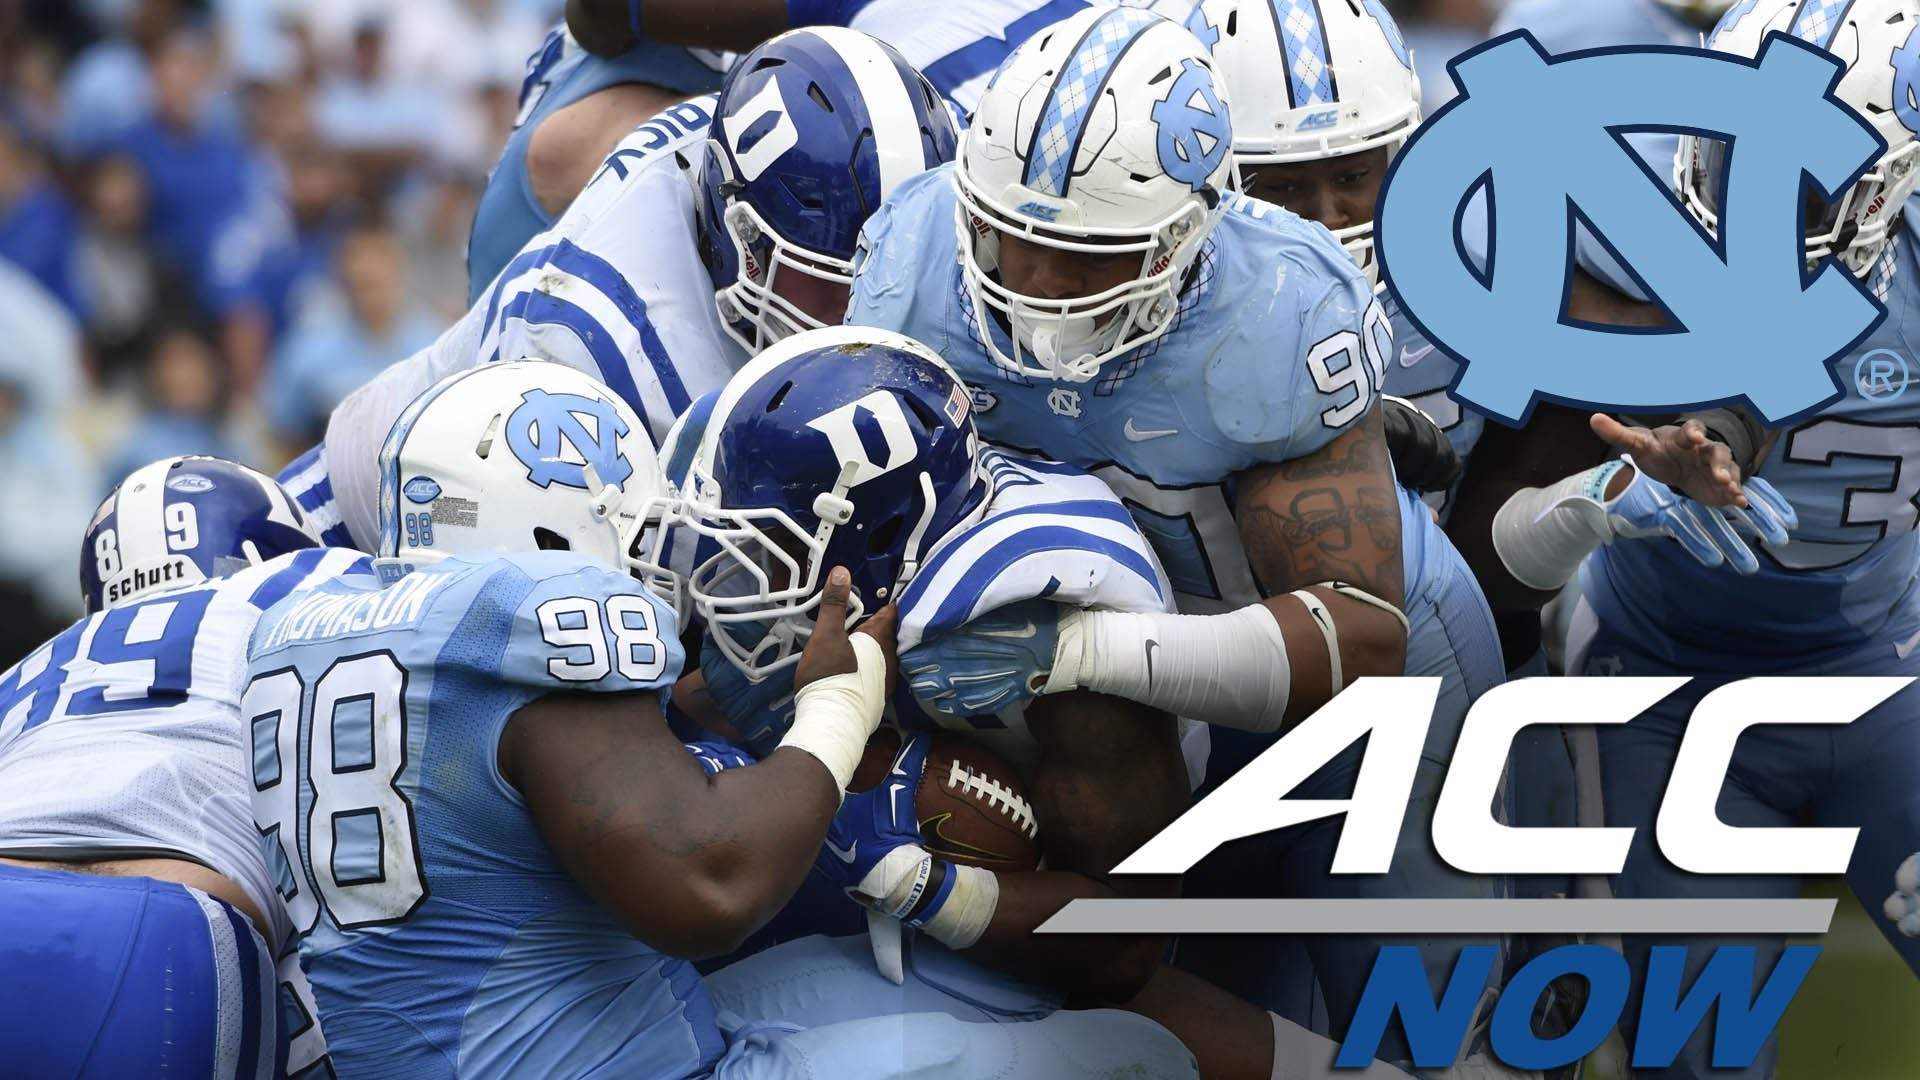 1920x1080 North Carolina Tar Heels' Defense Turned Around by Gene Chizik | ACC Now -  YouTube